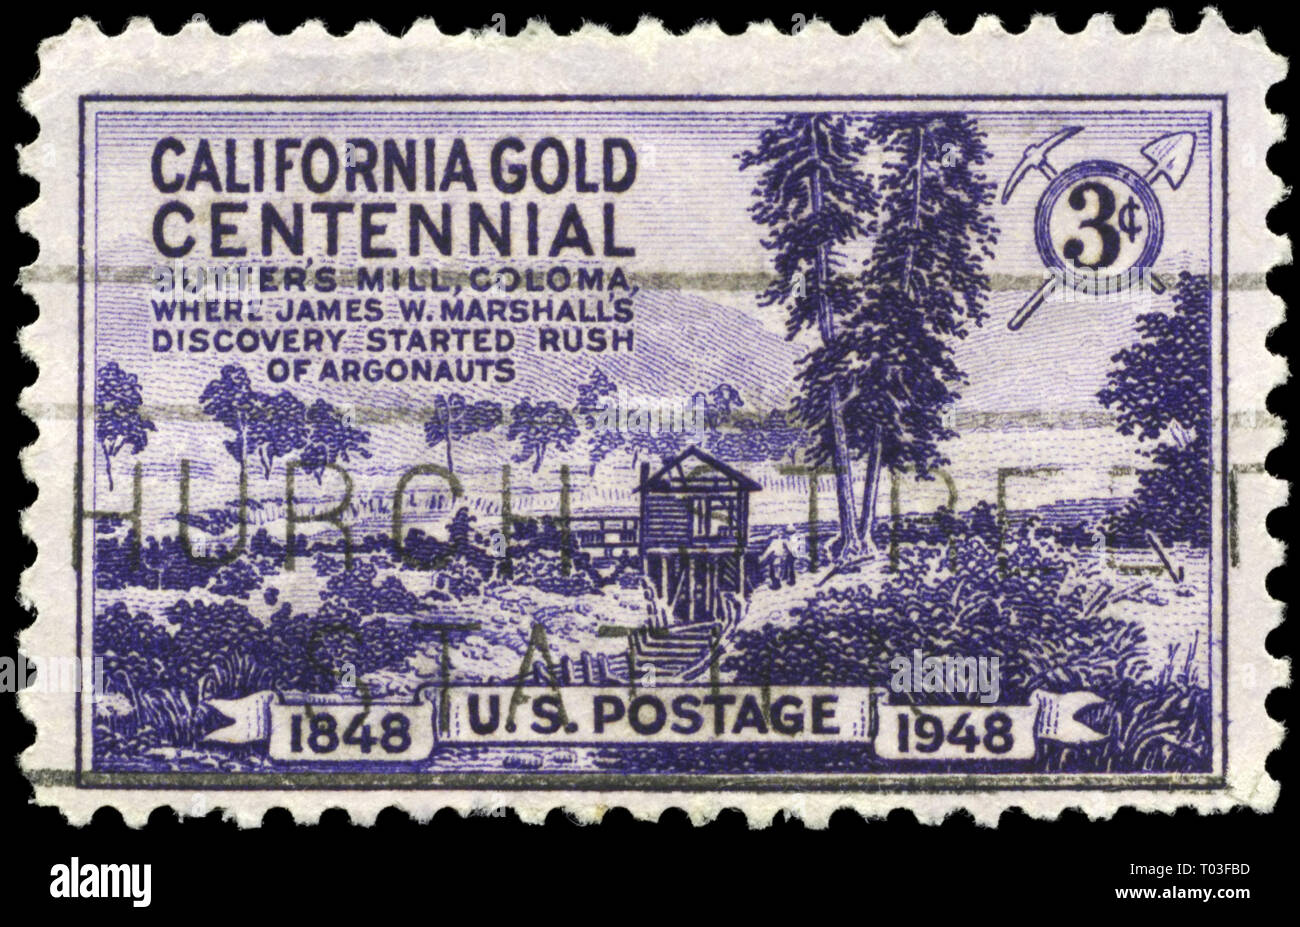 USA - CIRCA 1948: A Stamp printed in USA shows Sutter's Mill, Coloma, Discovery of gold in California, centenary, circa 1948 - Stock Image